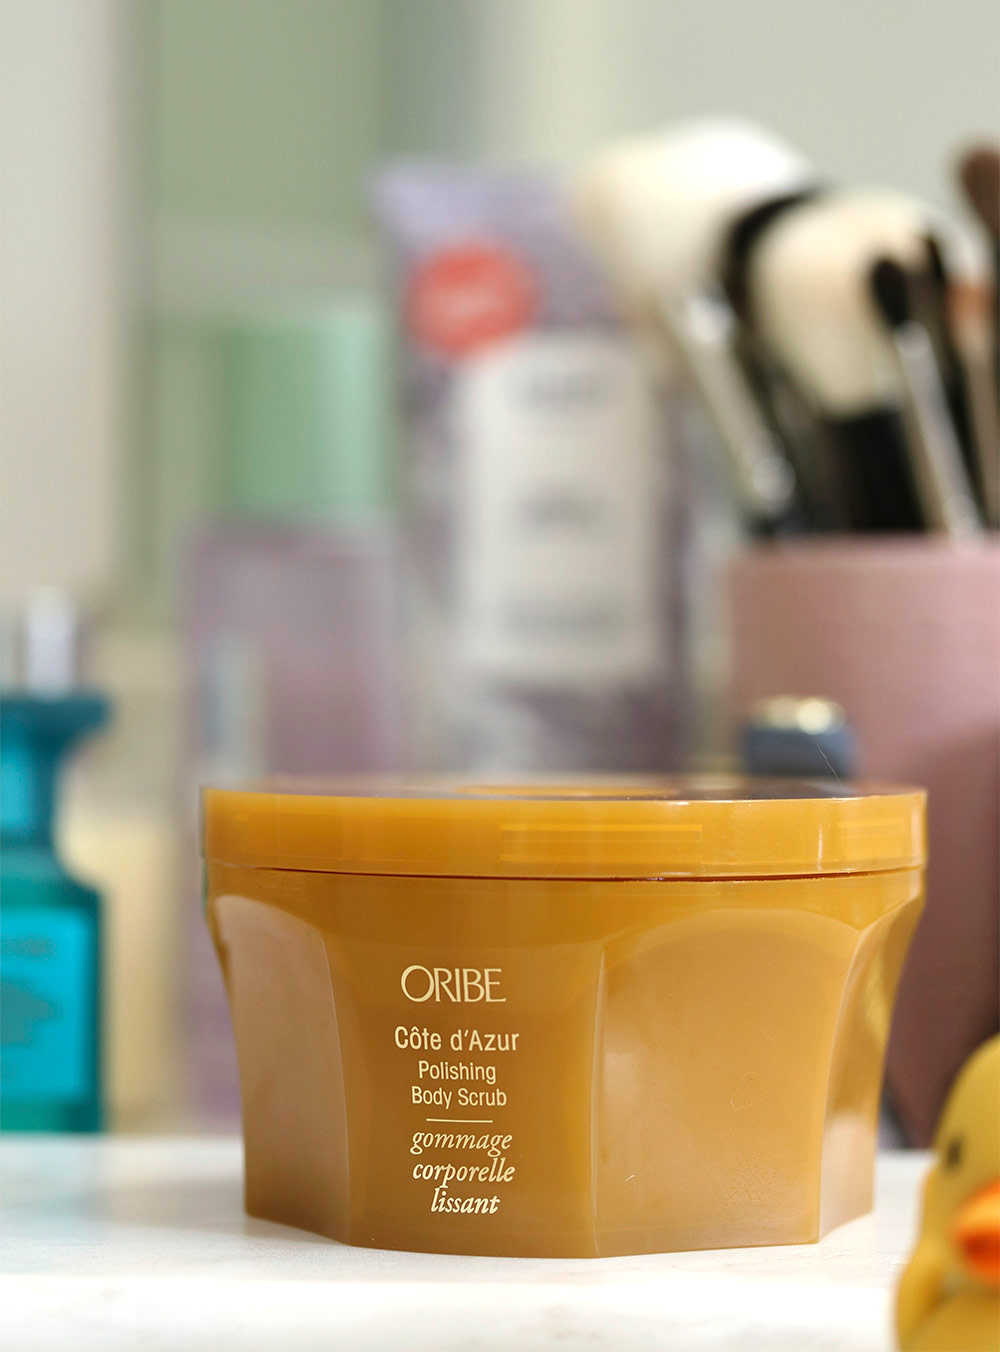 oribe body scrub